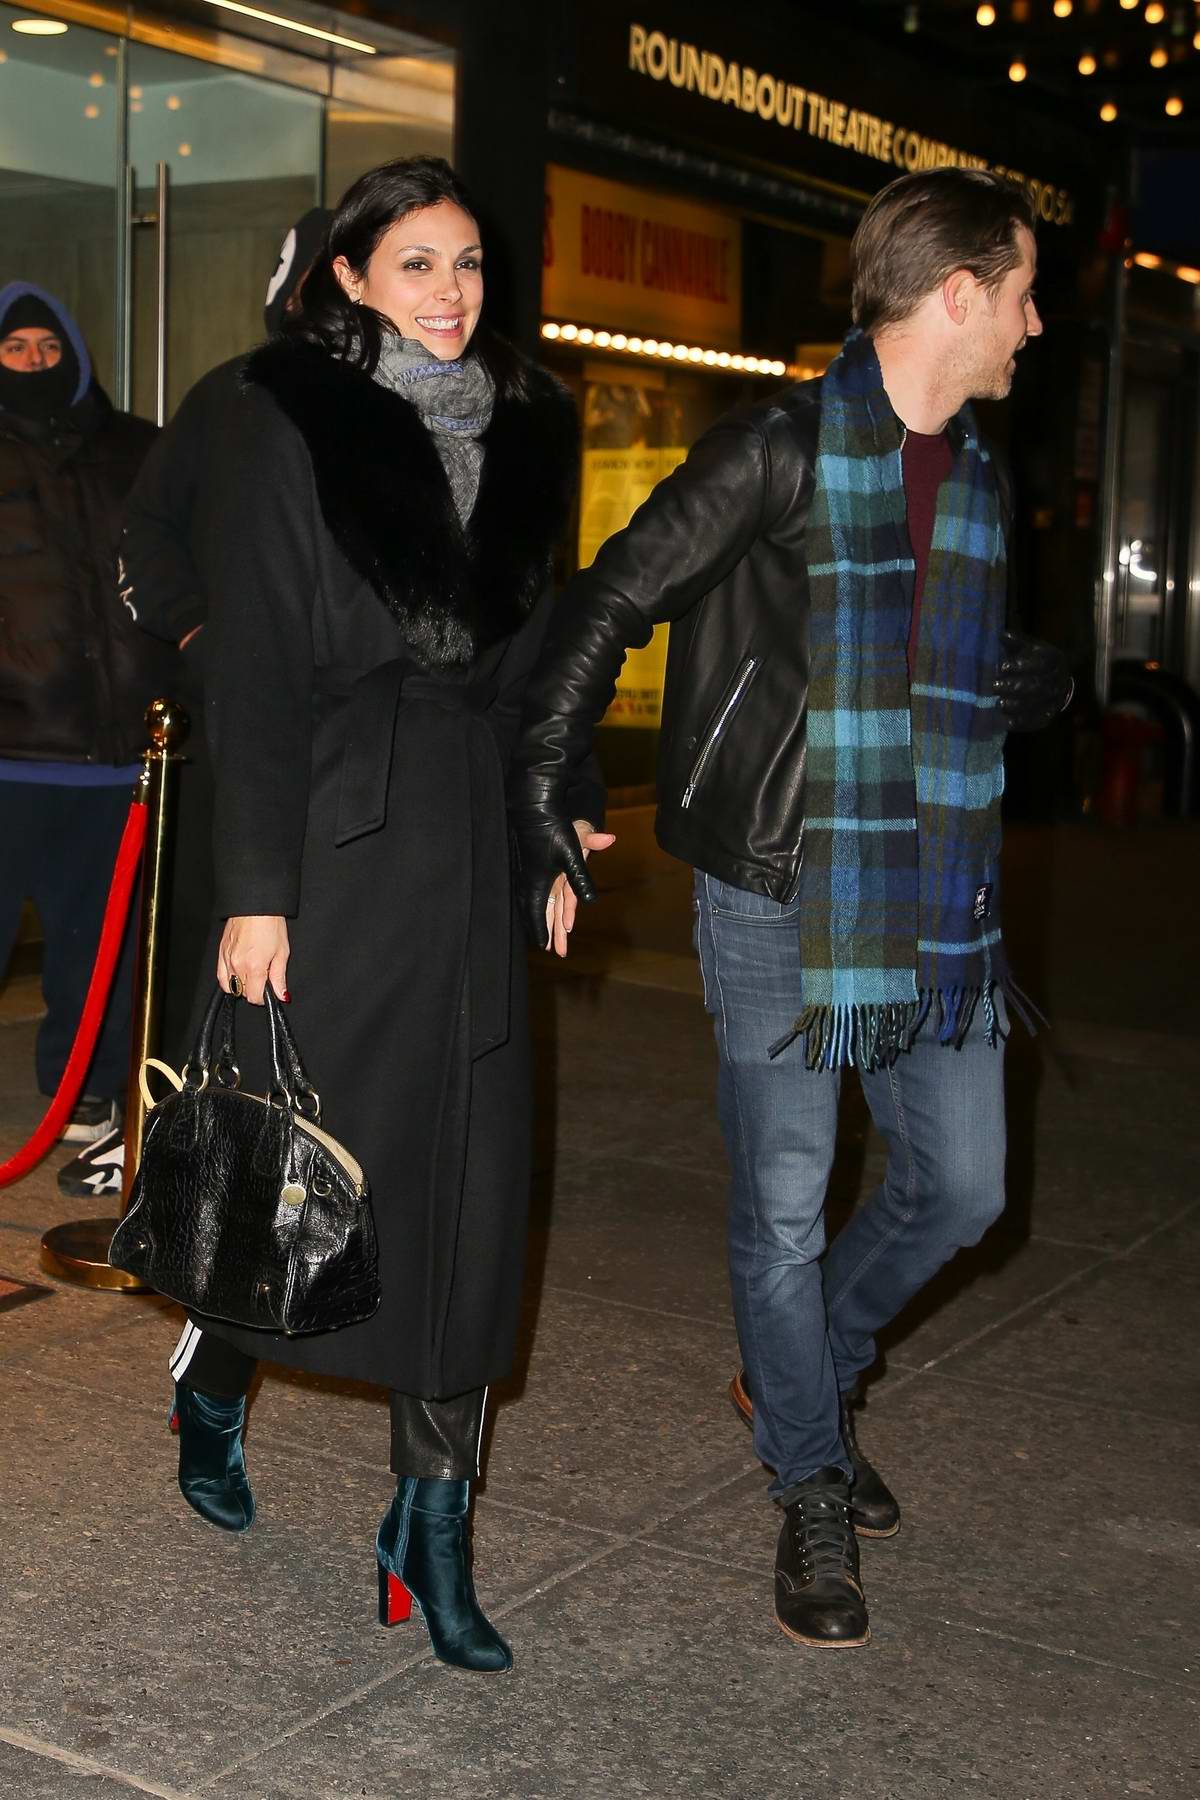 Morena Baccarin And Ben McKenzie seen leaving a private screening at Feinstein's/54 Below in New York City